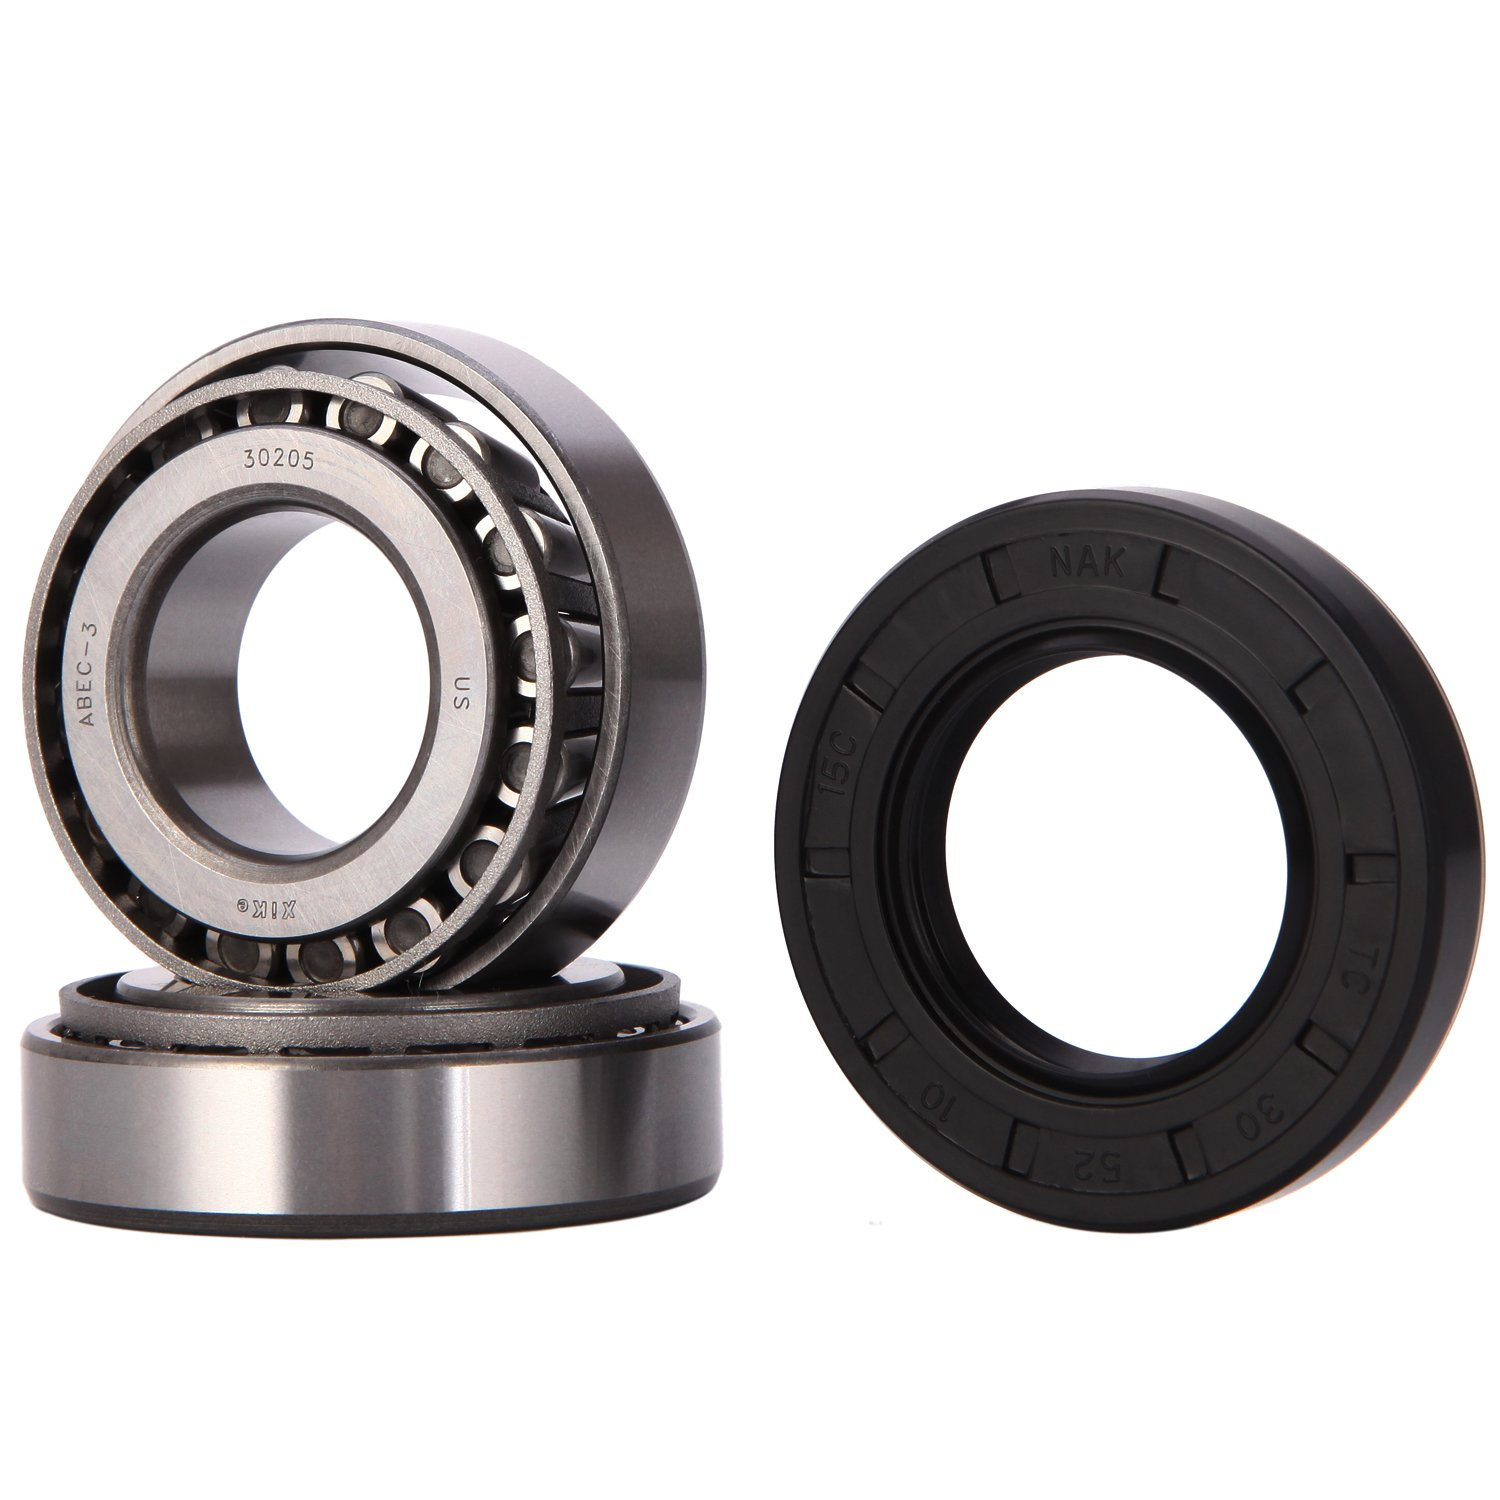 XiKe 25mm Axle Wheel Bearings Kit, 30205 25x52x16.25mm and Seal TC 30x52x10mm, Rotary Quiet High Speed and Long Life, Tapered Roller Bearings.